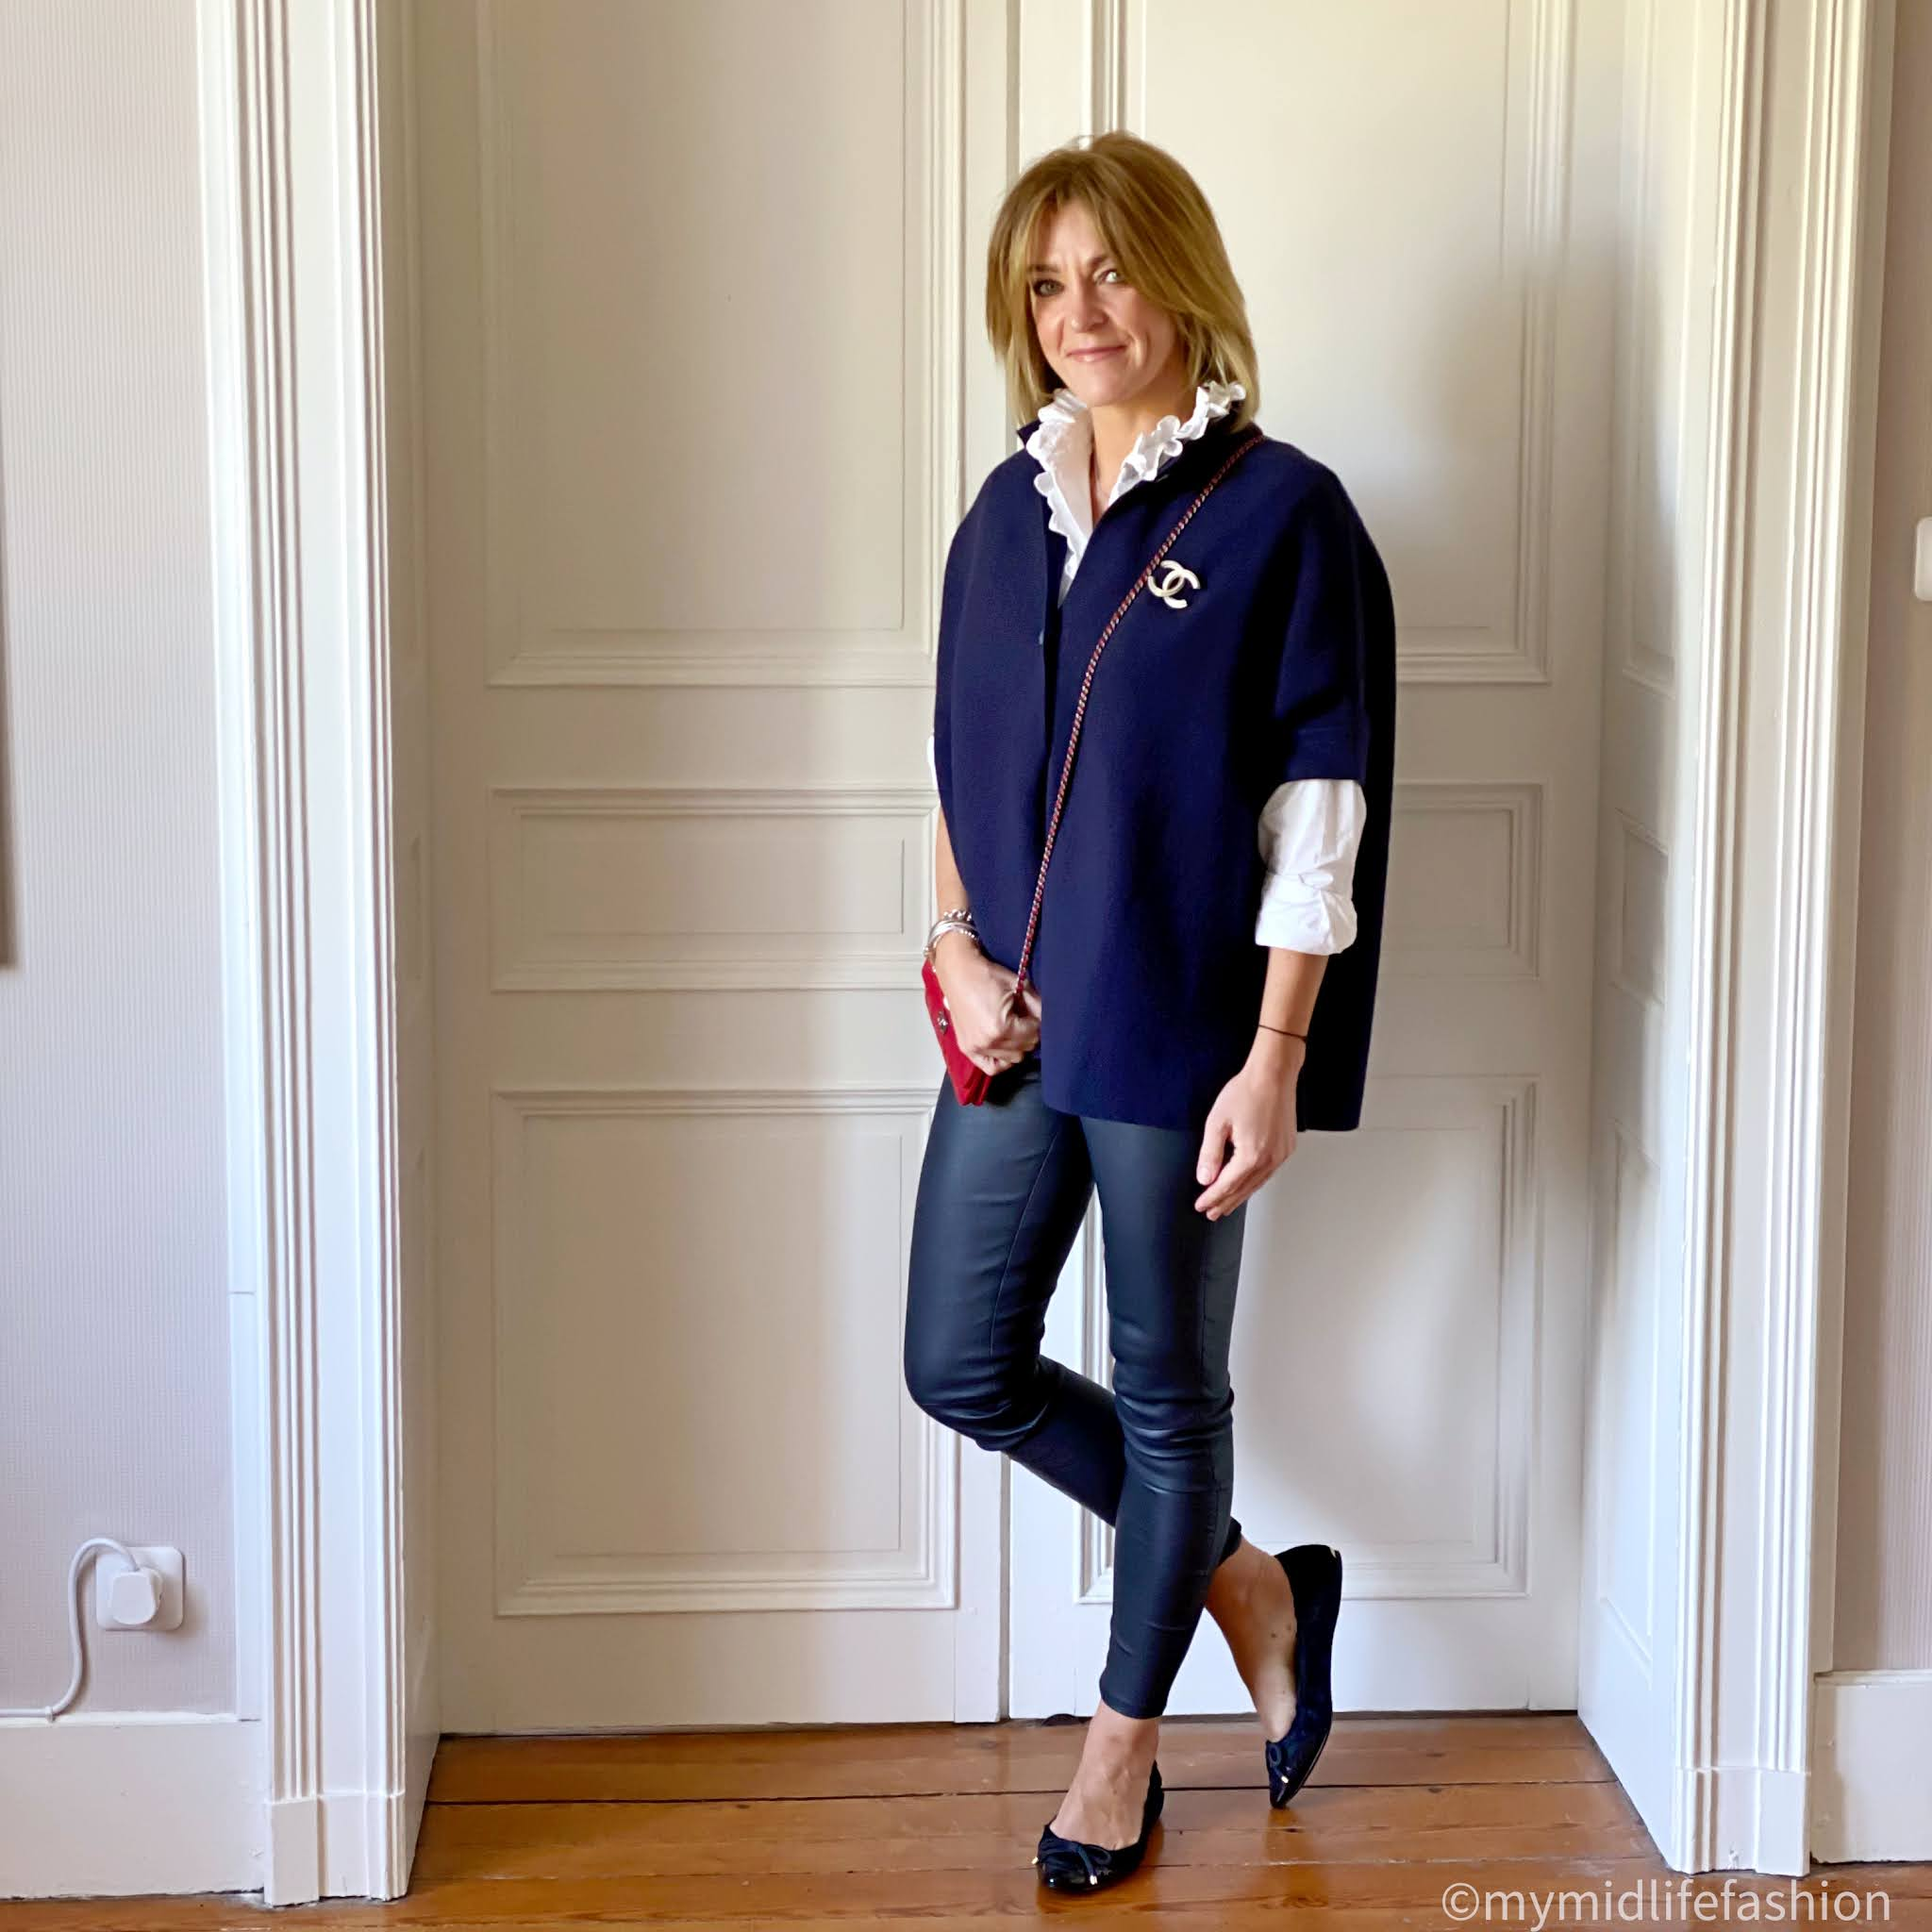 my midlife fashion, pink avocet Bergamo jacket, Isabel Marant Etoile blouse, Chanel brooch, Chanel wallet on chain, uterque leather leggings, Burberry ballet pumps